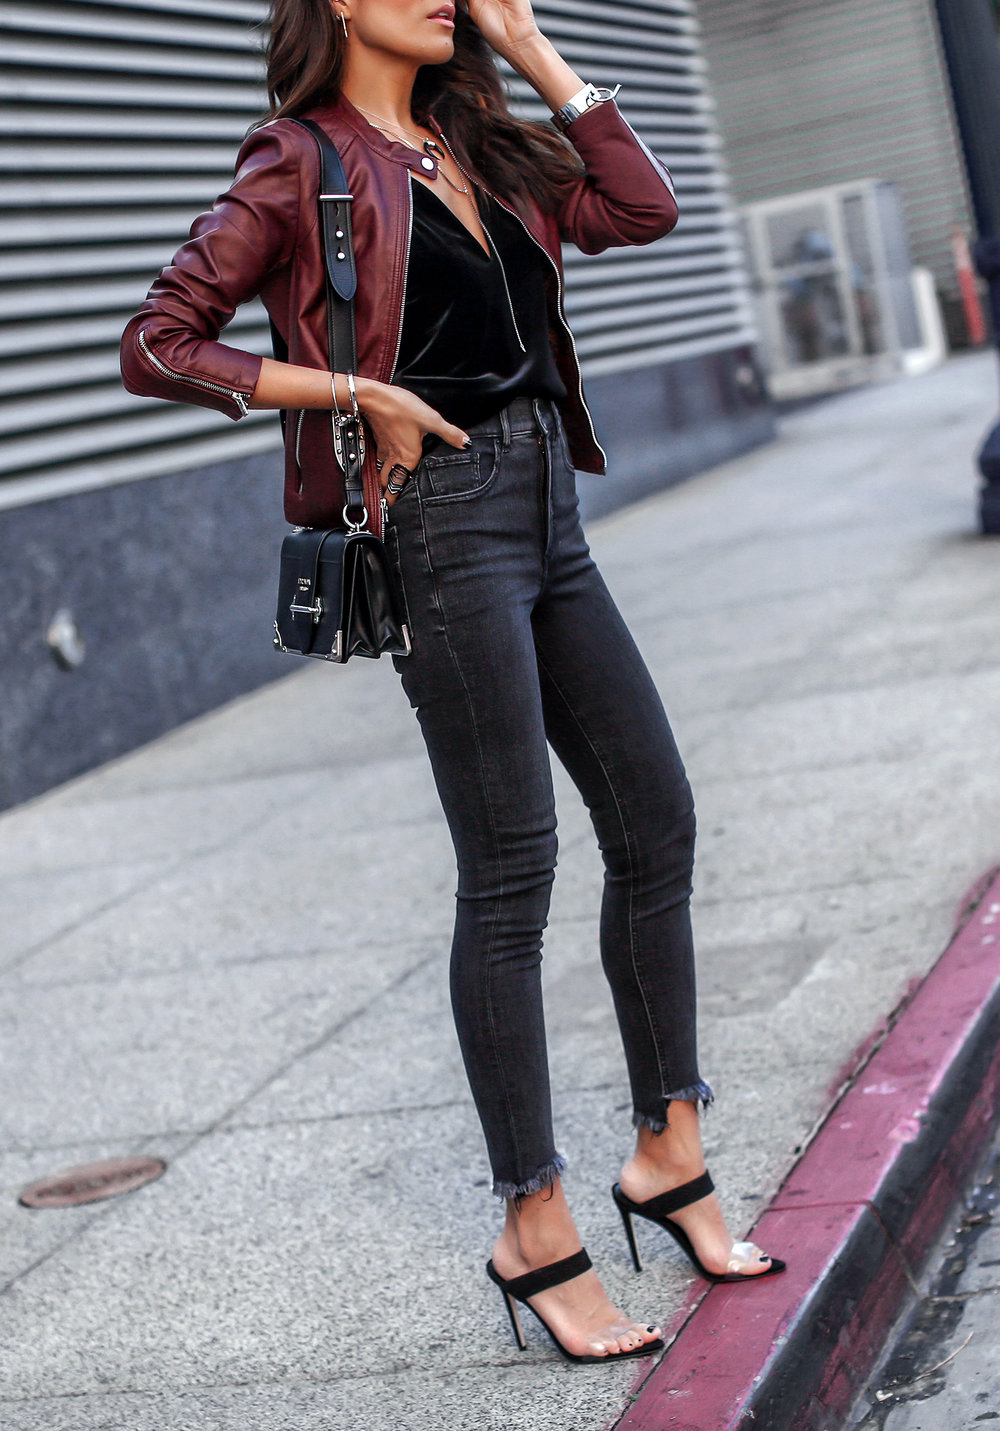 Express Ripped Denim Leather Moto Jacket Prada Cahier Steve Madden Shoes.jpg